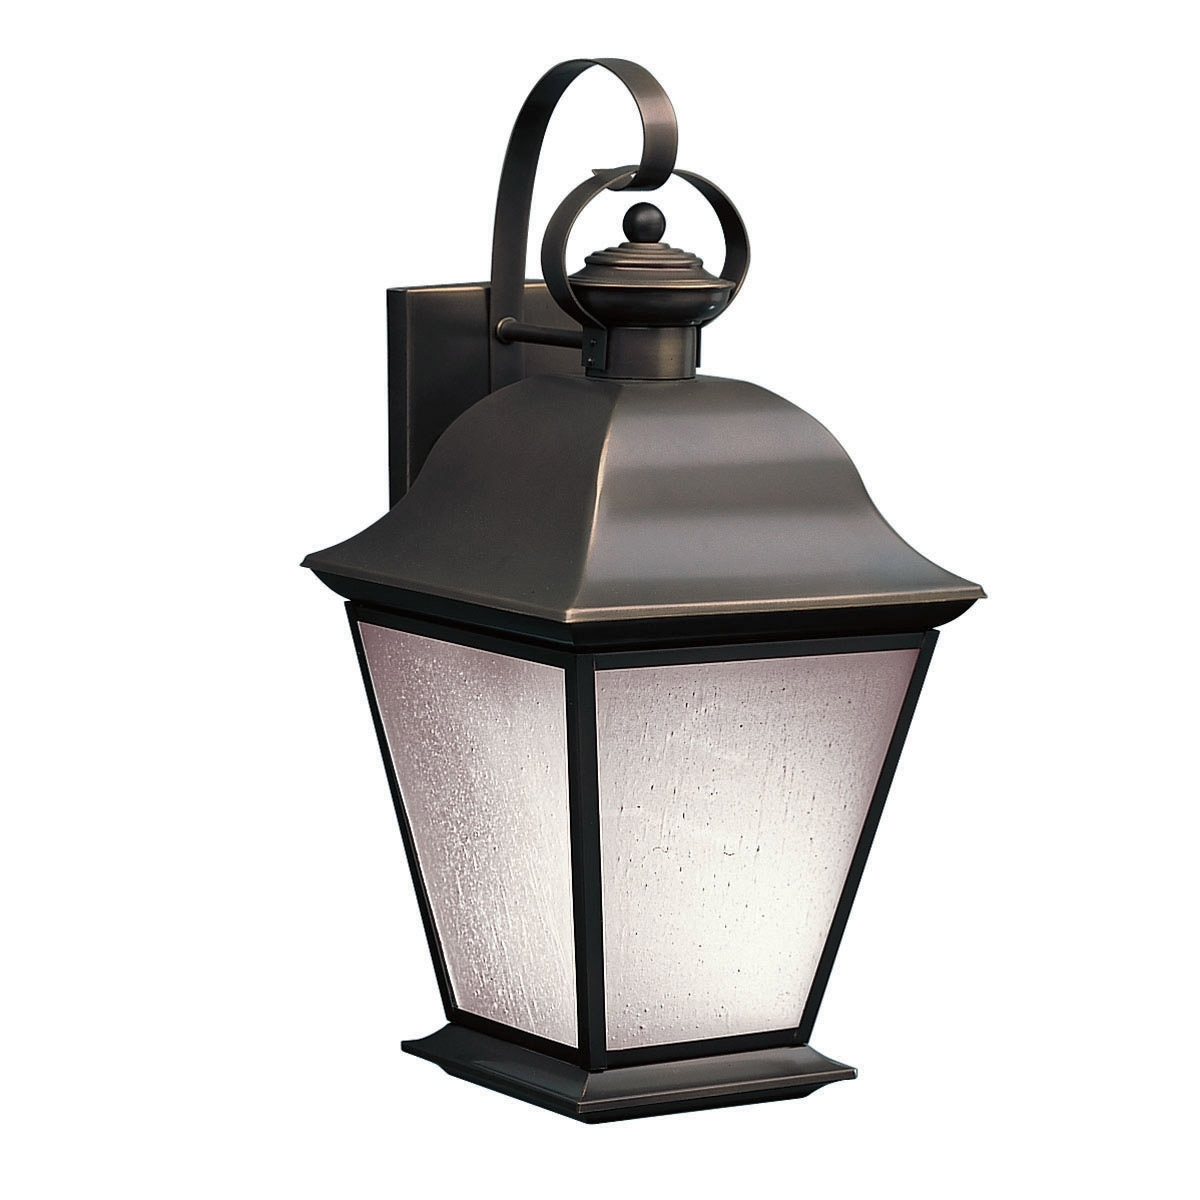 Best And Newest Wall Mounted Outdoor Lanterns With Wall Lights Design: Solar Wall Mounted Outdoor Lights In, Solar (Gallery 7 of 20)